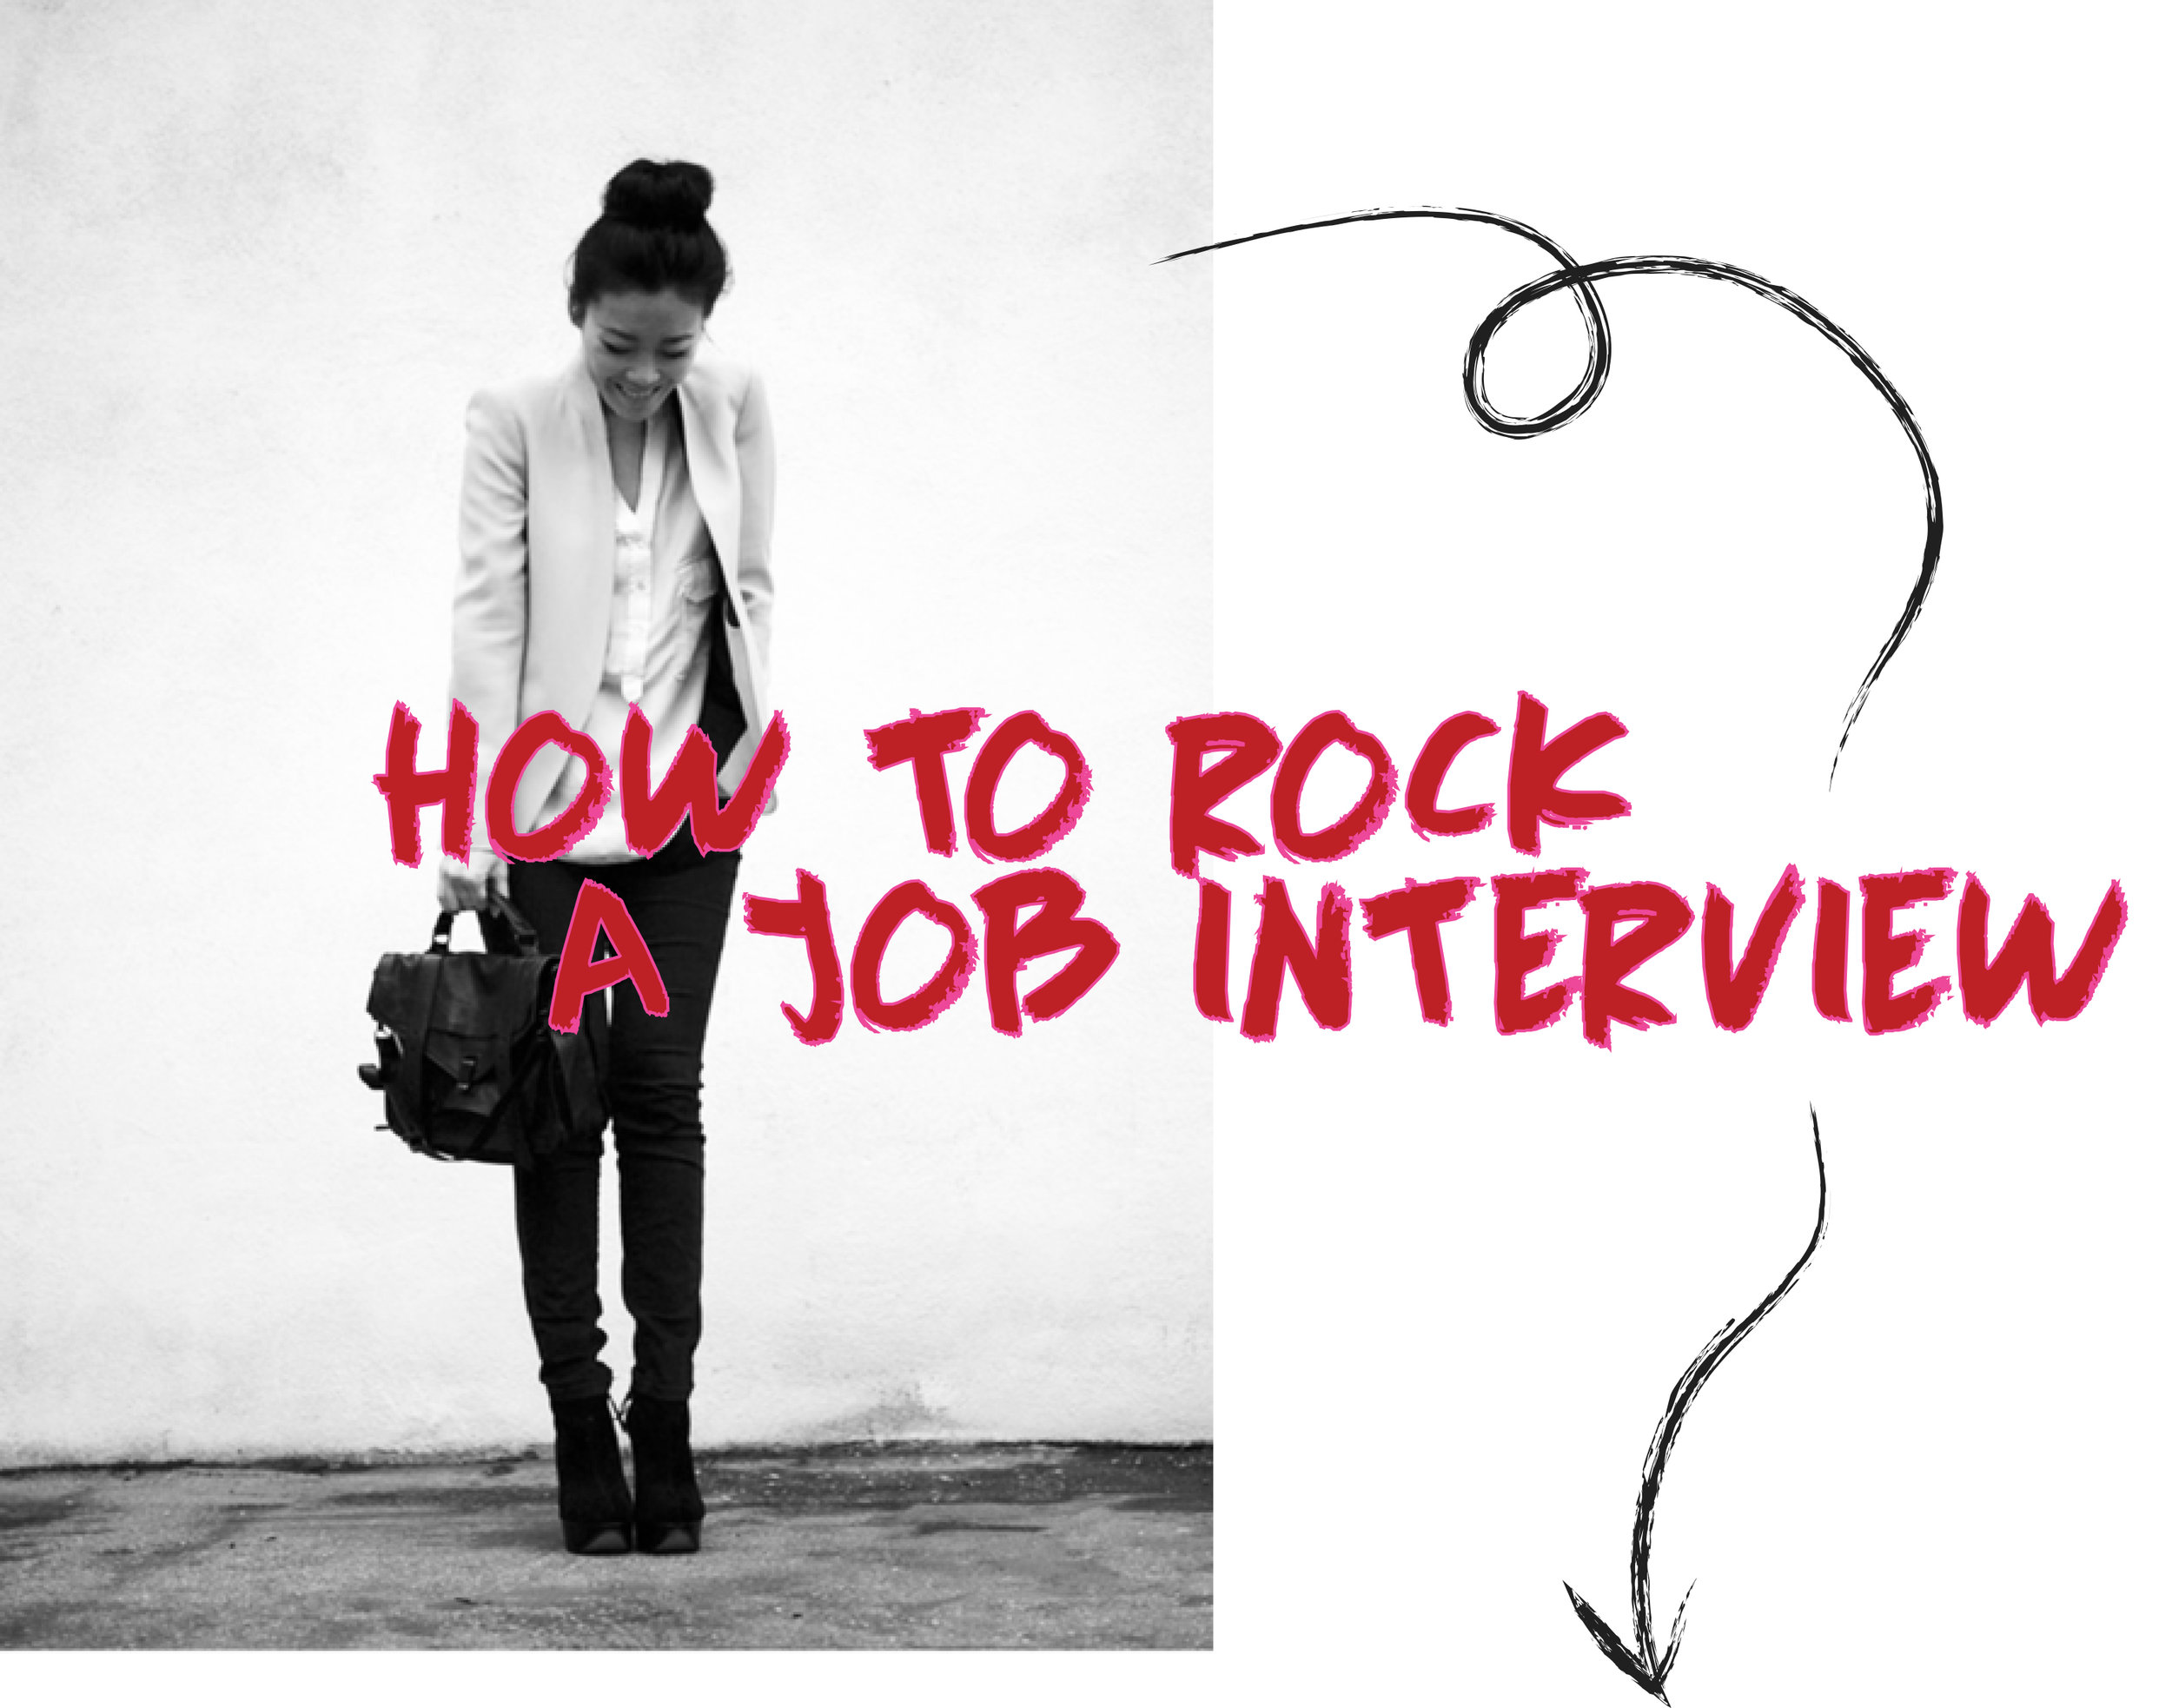 Image via https://guestofaguest.com/new-york/fashion/dress-for-the-job-you-want-10-style-tips-for-your-big-interview?slide=10